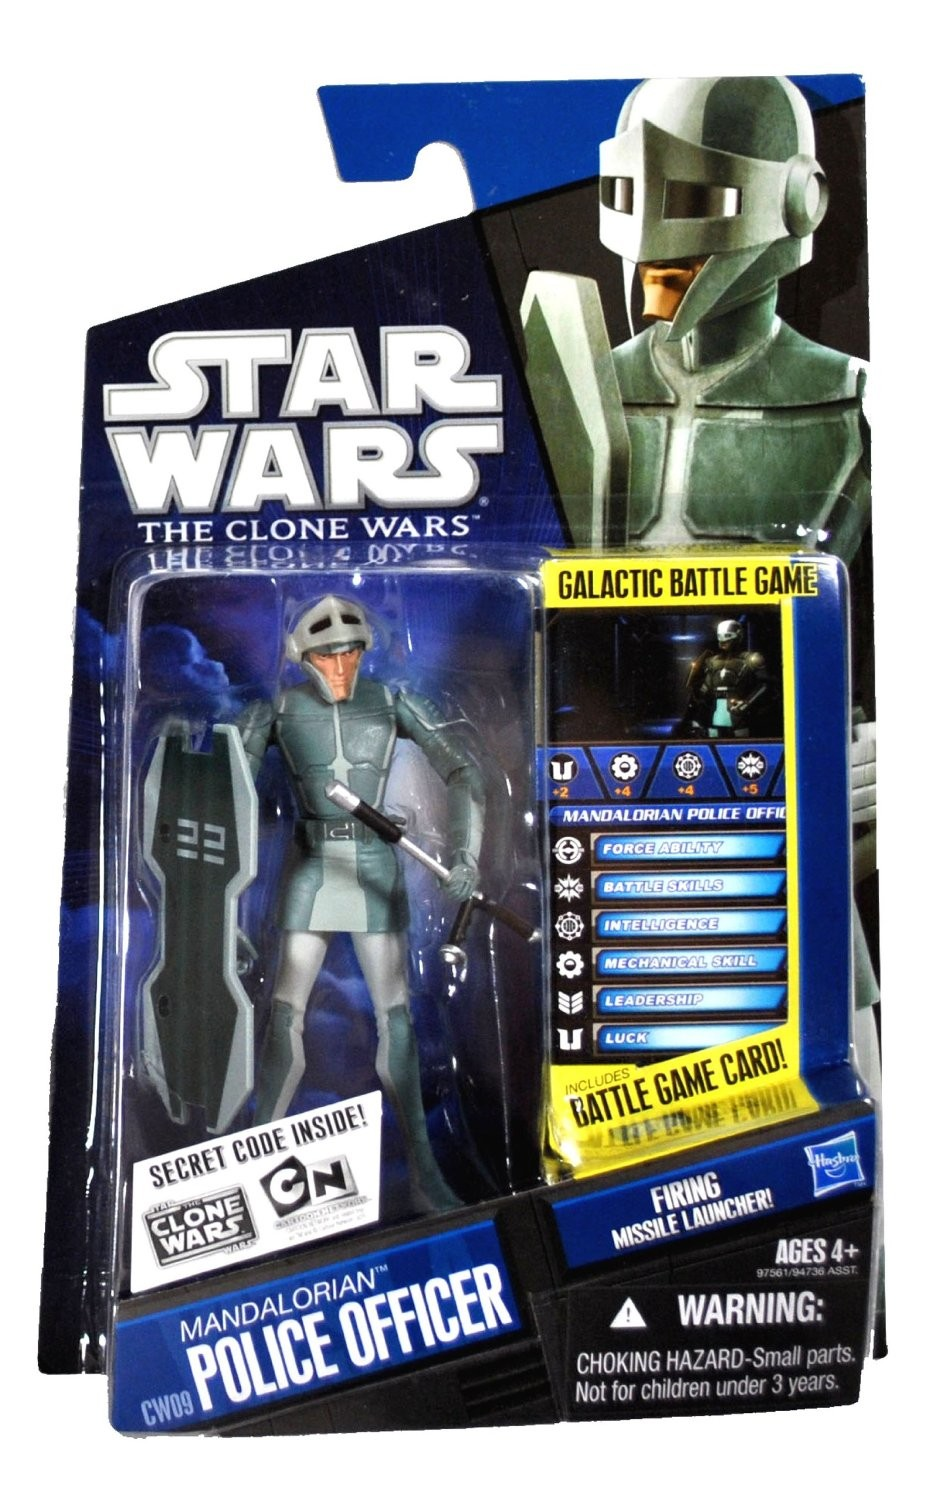 Star Wars The Clone Wars Toys : Star wars the clone mandalorian police officer action